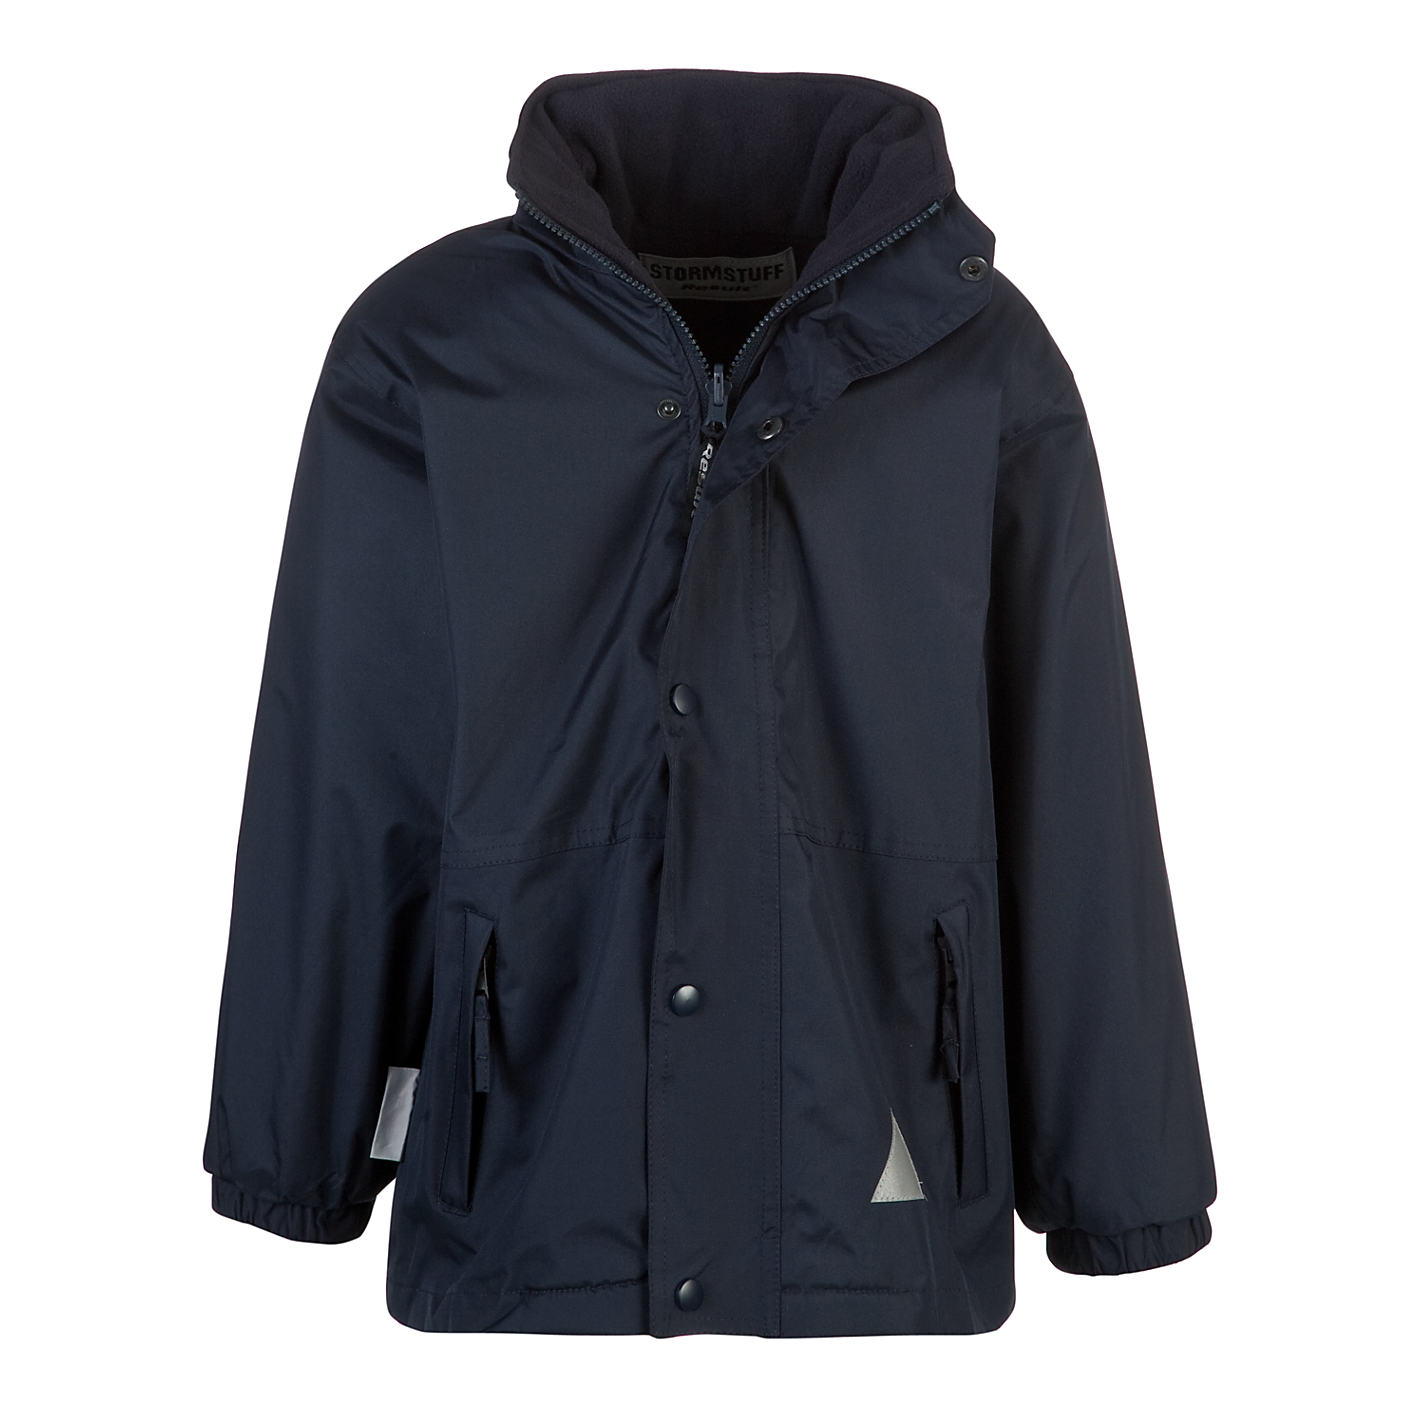 Outerwear | View all Girls&39 School Uniform | John Lewis